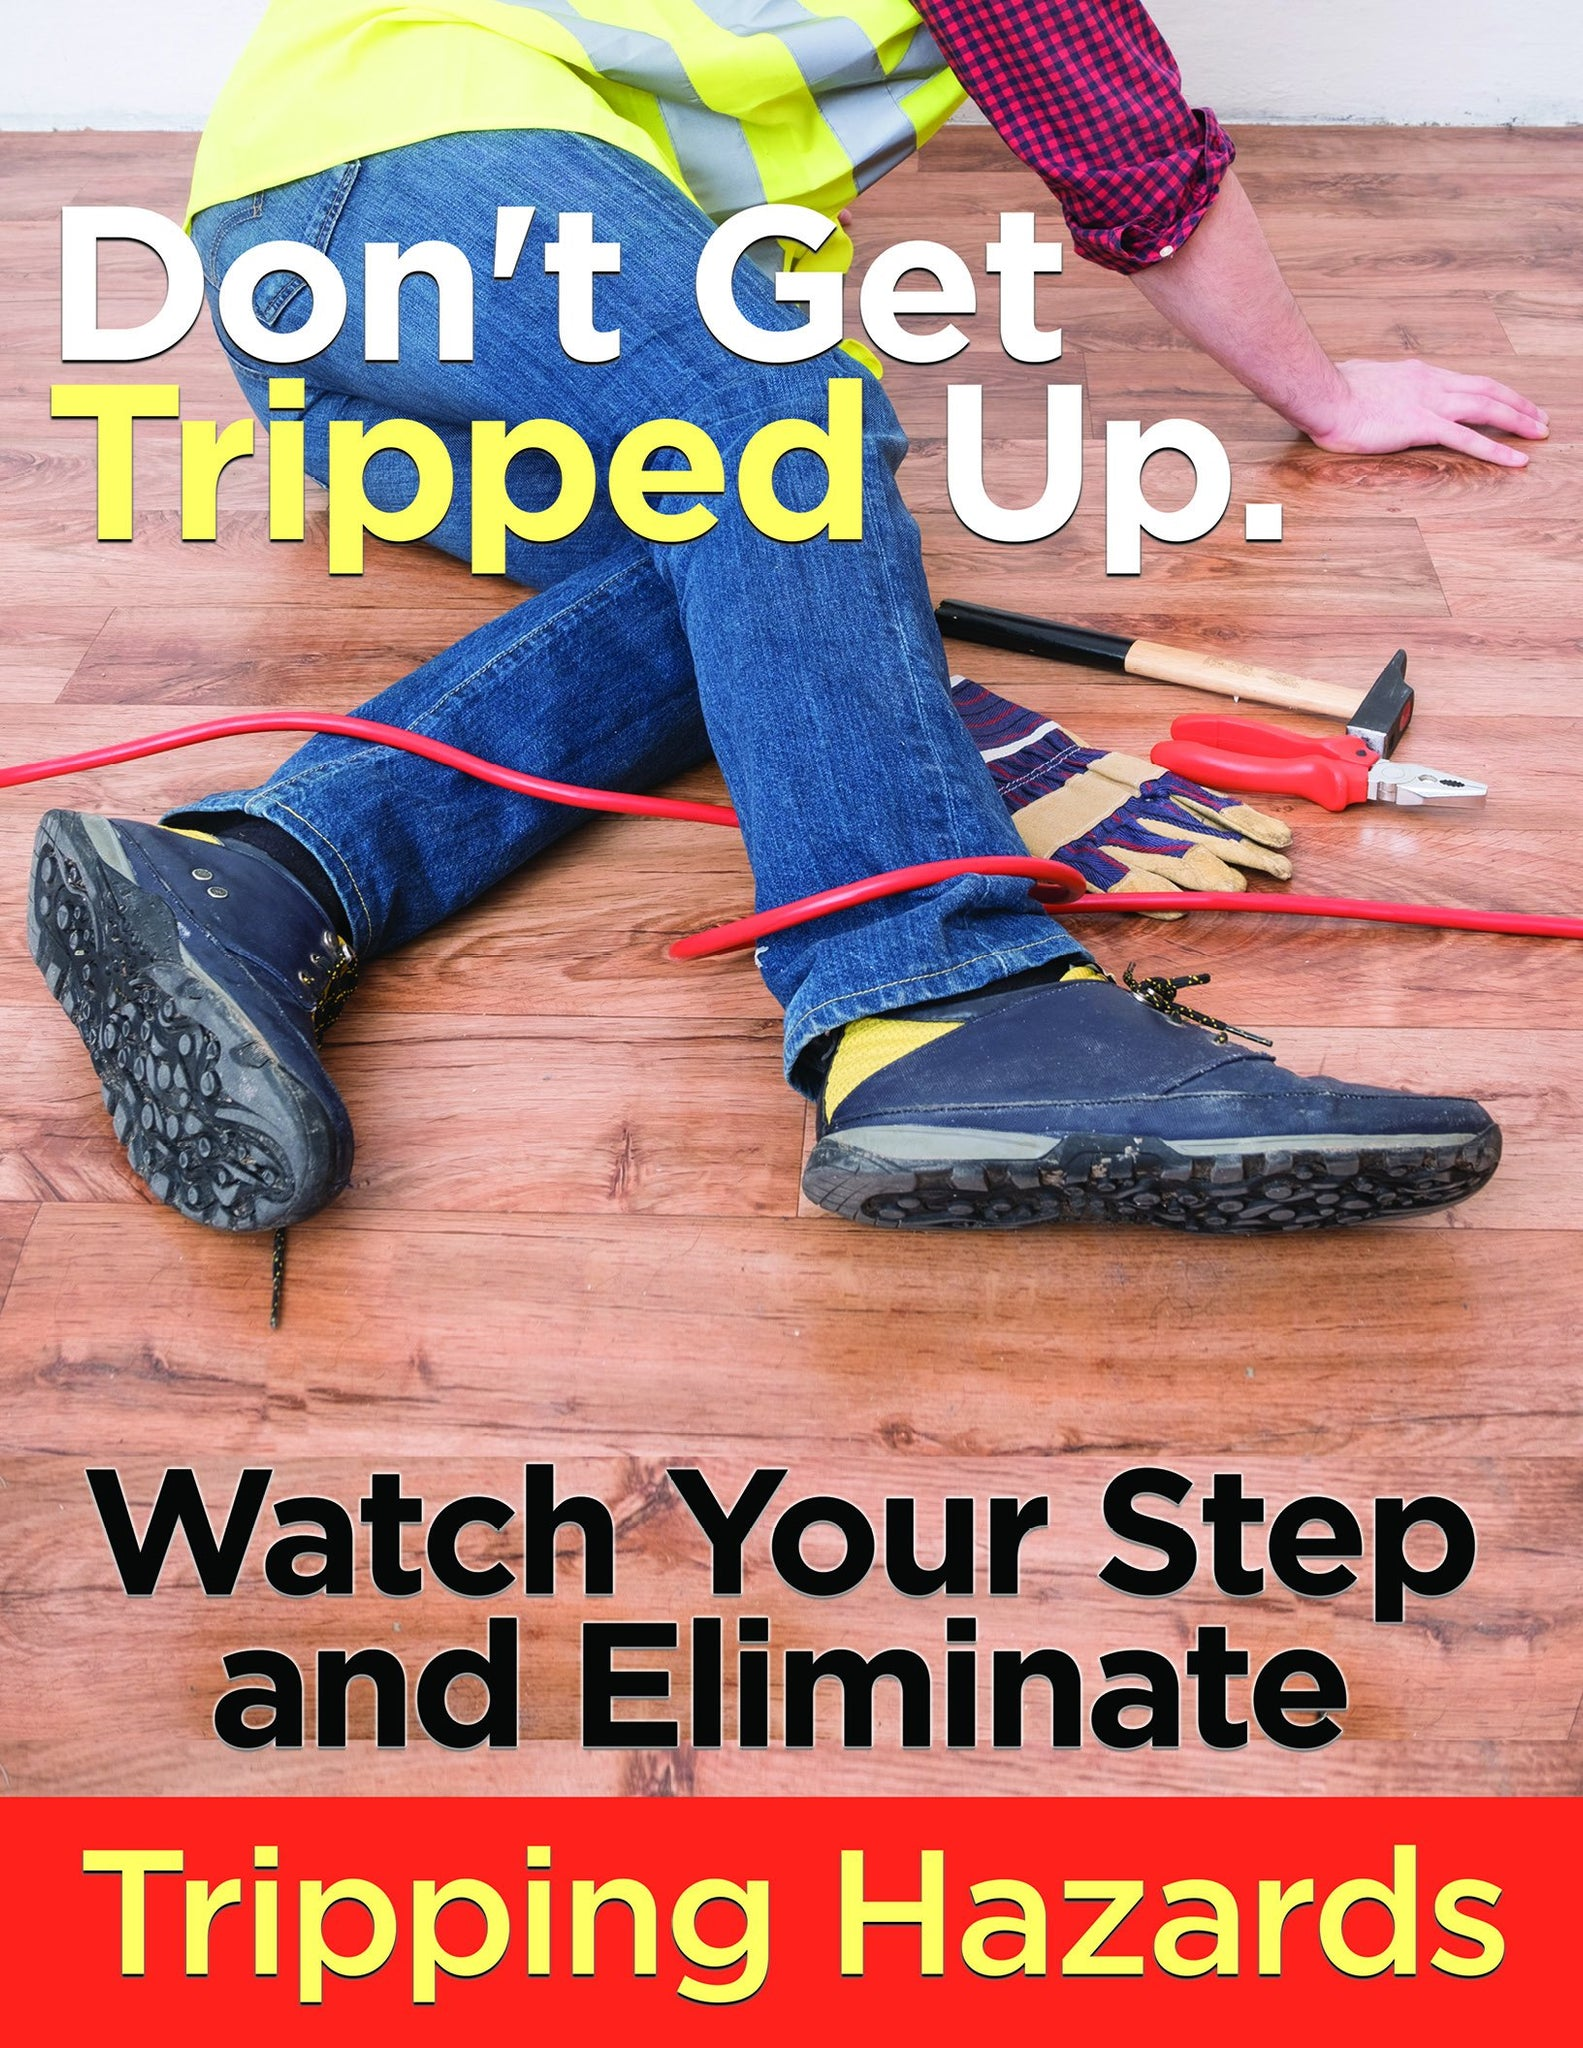 Dont Get Tripped Up - Safety Poster New Posters General